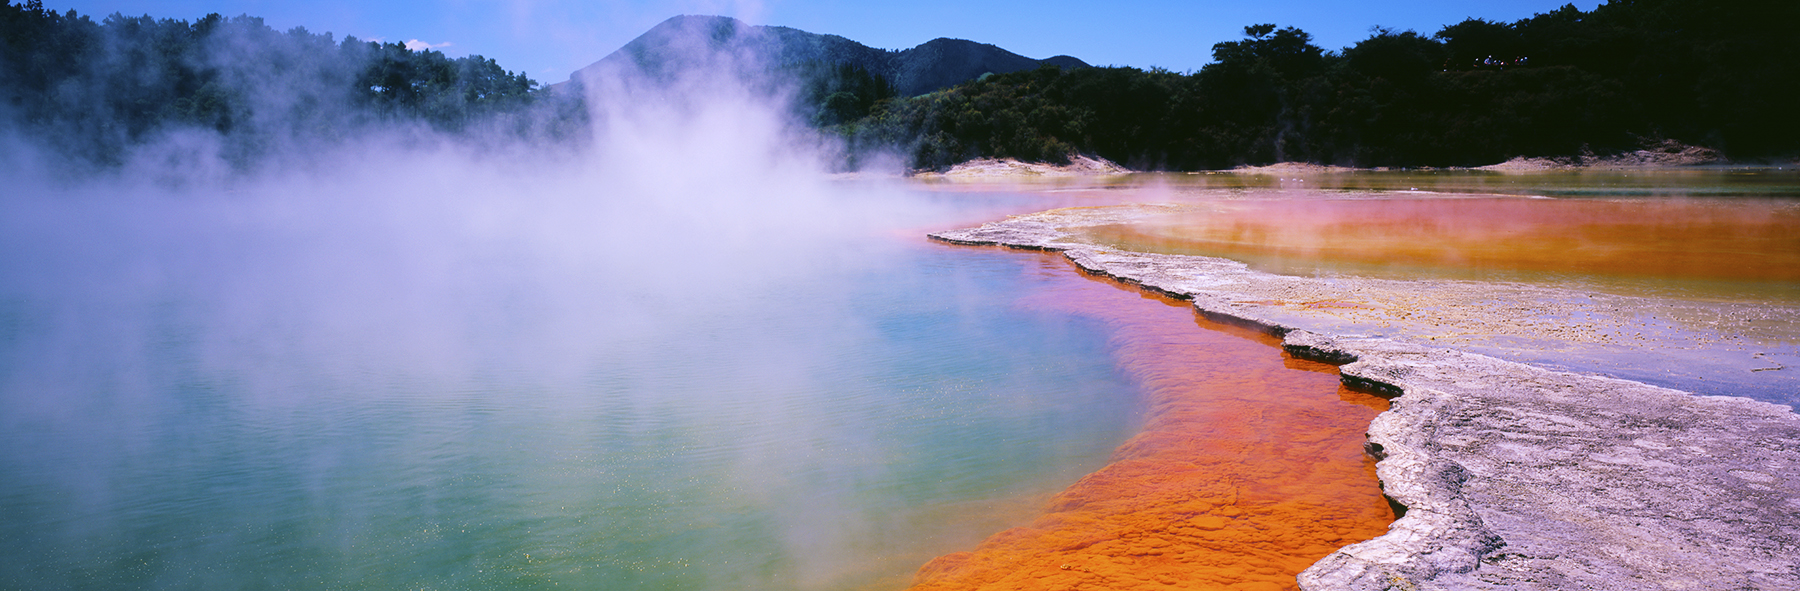 Wai o Tapu, Rotorua, New Zealand. A Limited Edition Fine Art Landscape Photograph by Richard Hume